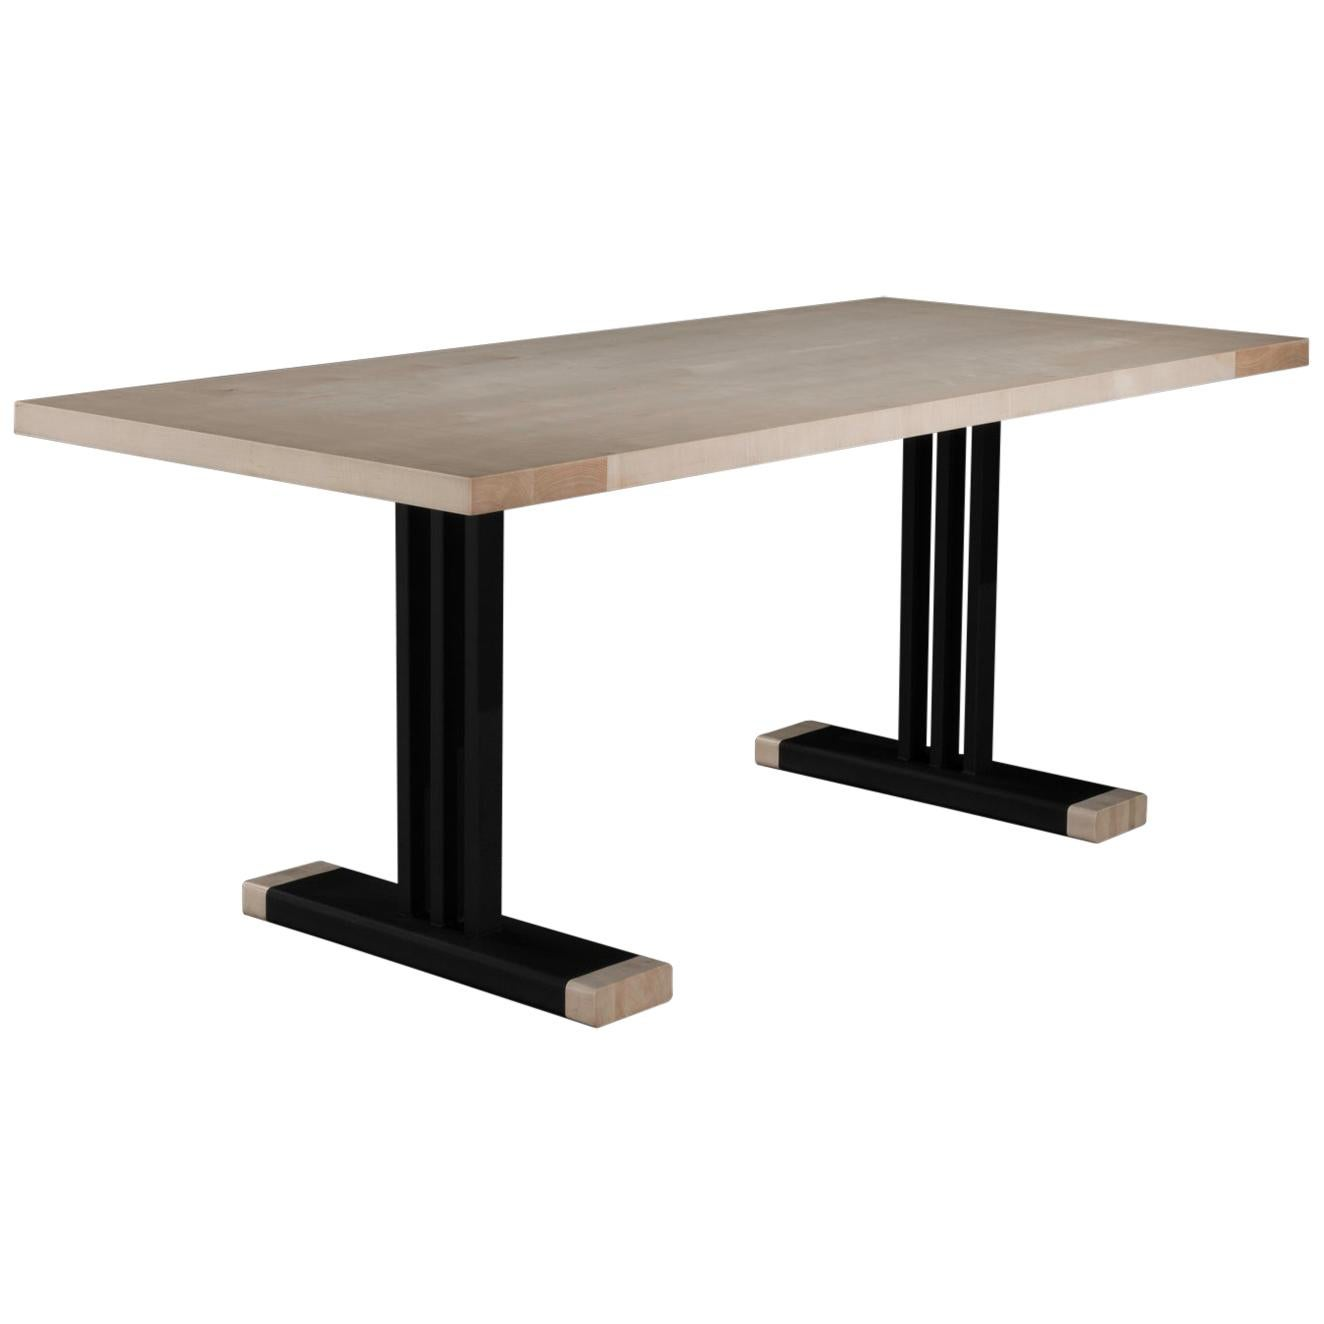 Maple Dining Table with Black Steel & Maple Legs 'Trumbull Dining Table'